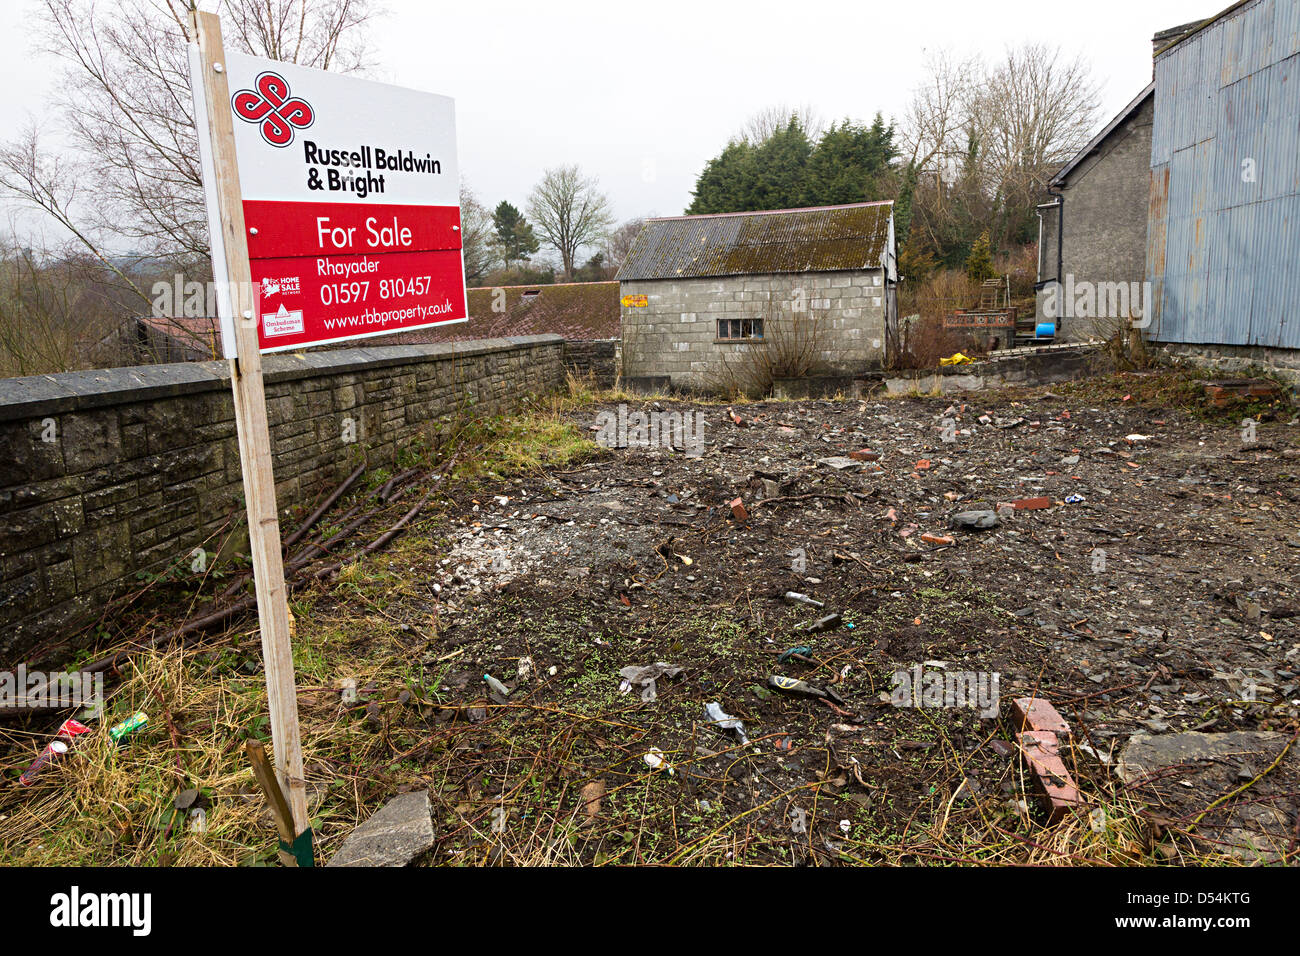 For sale sign on plot of building land in town of Rhaeadr, Wales, UK - Stock Image